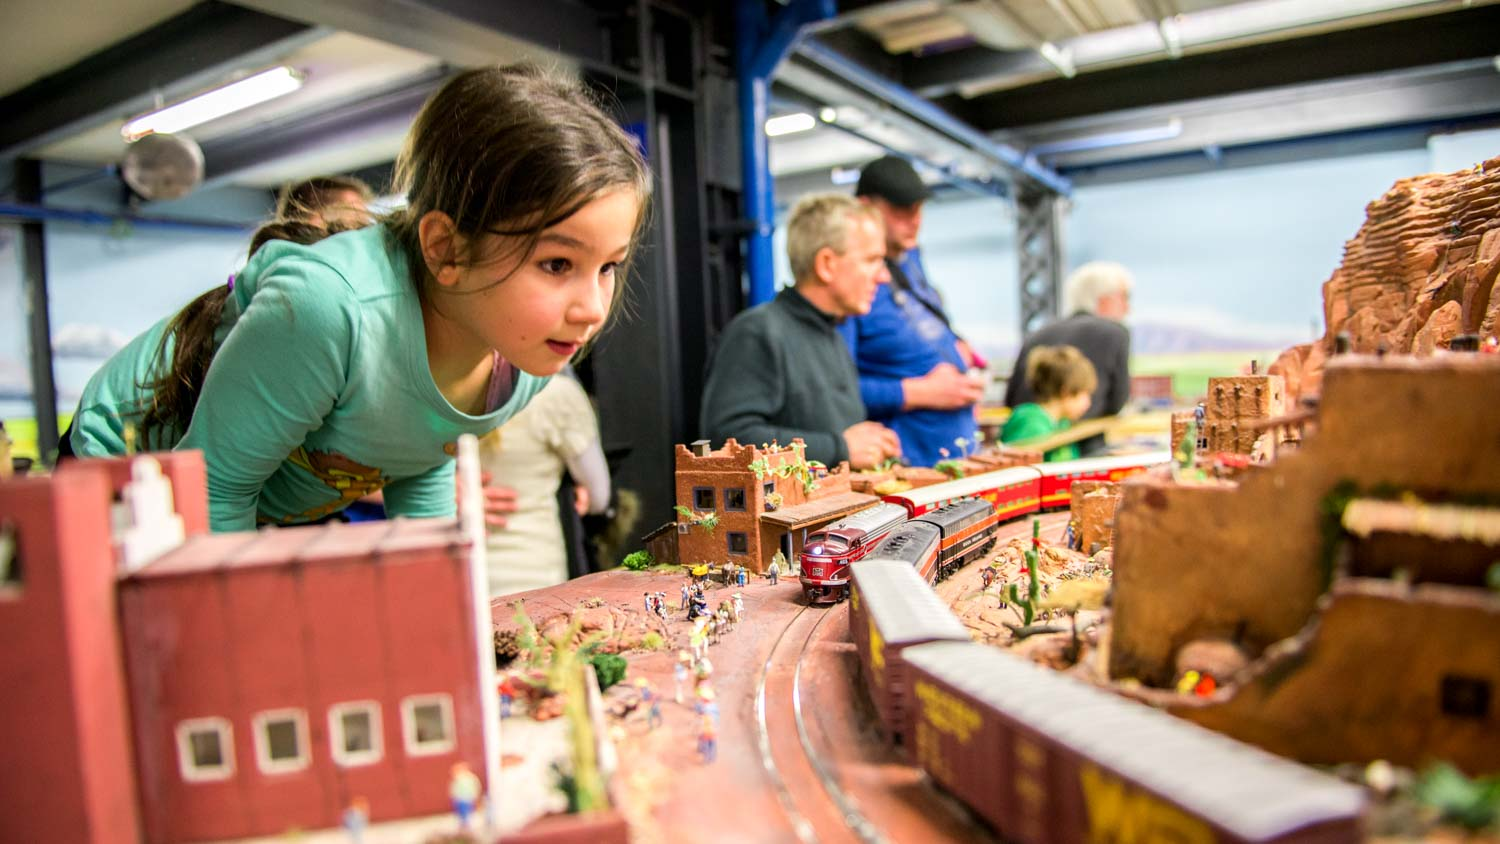 See the largest model railway in the world